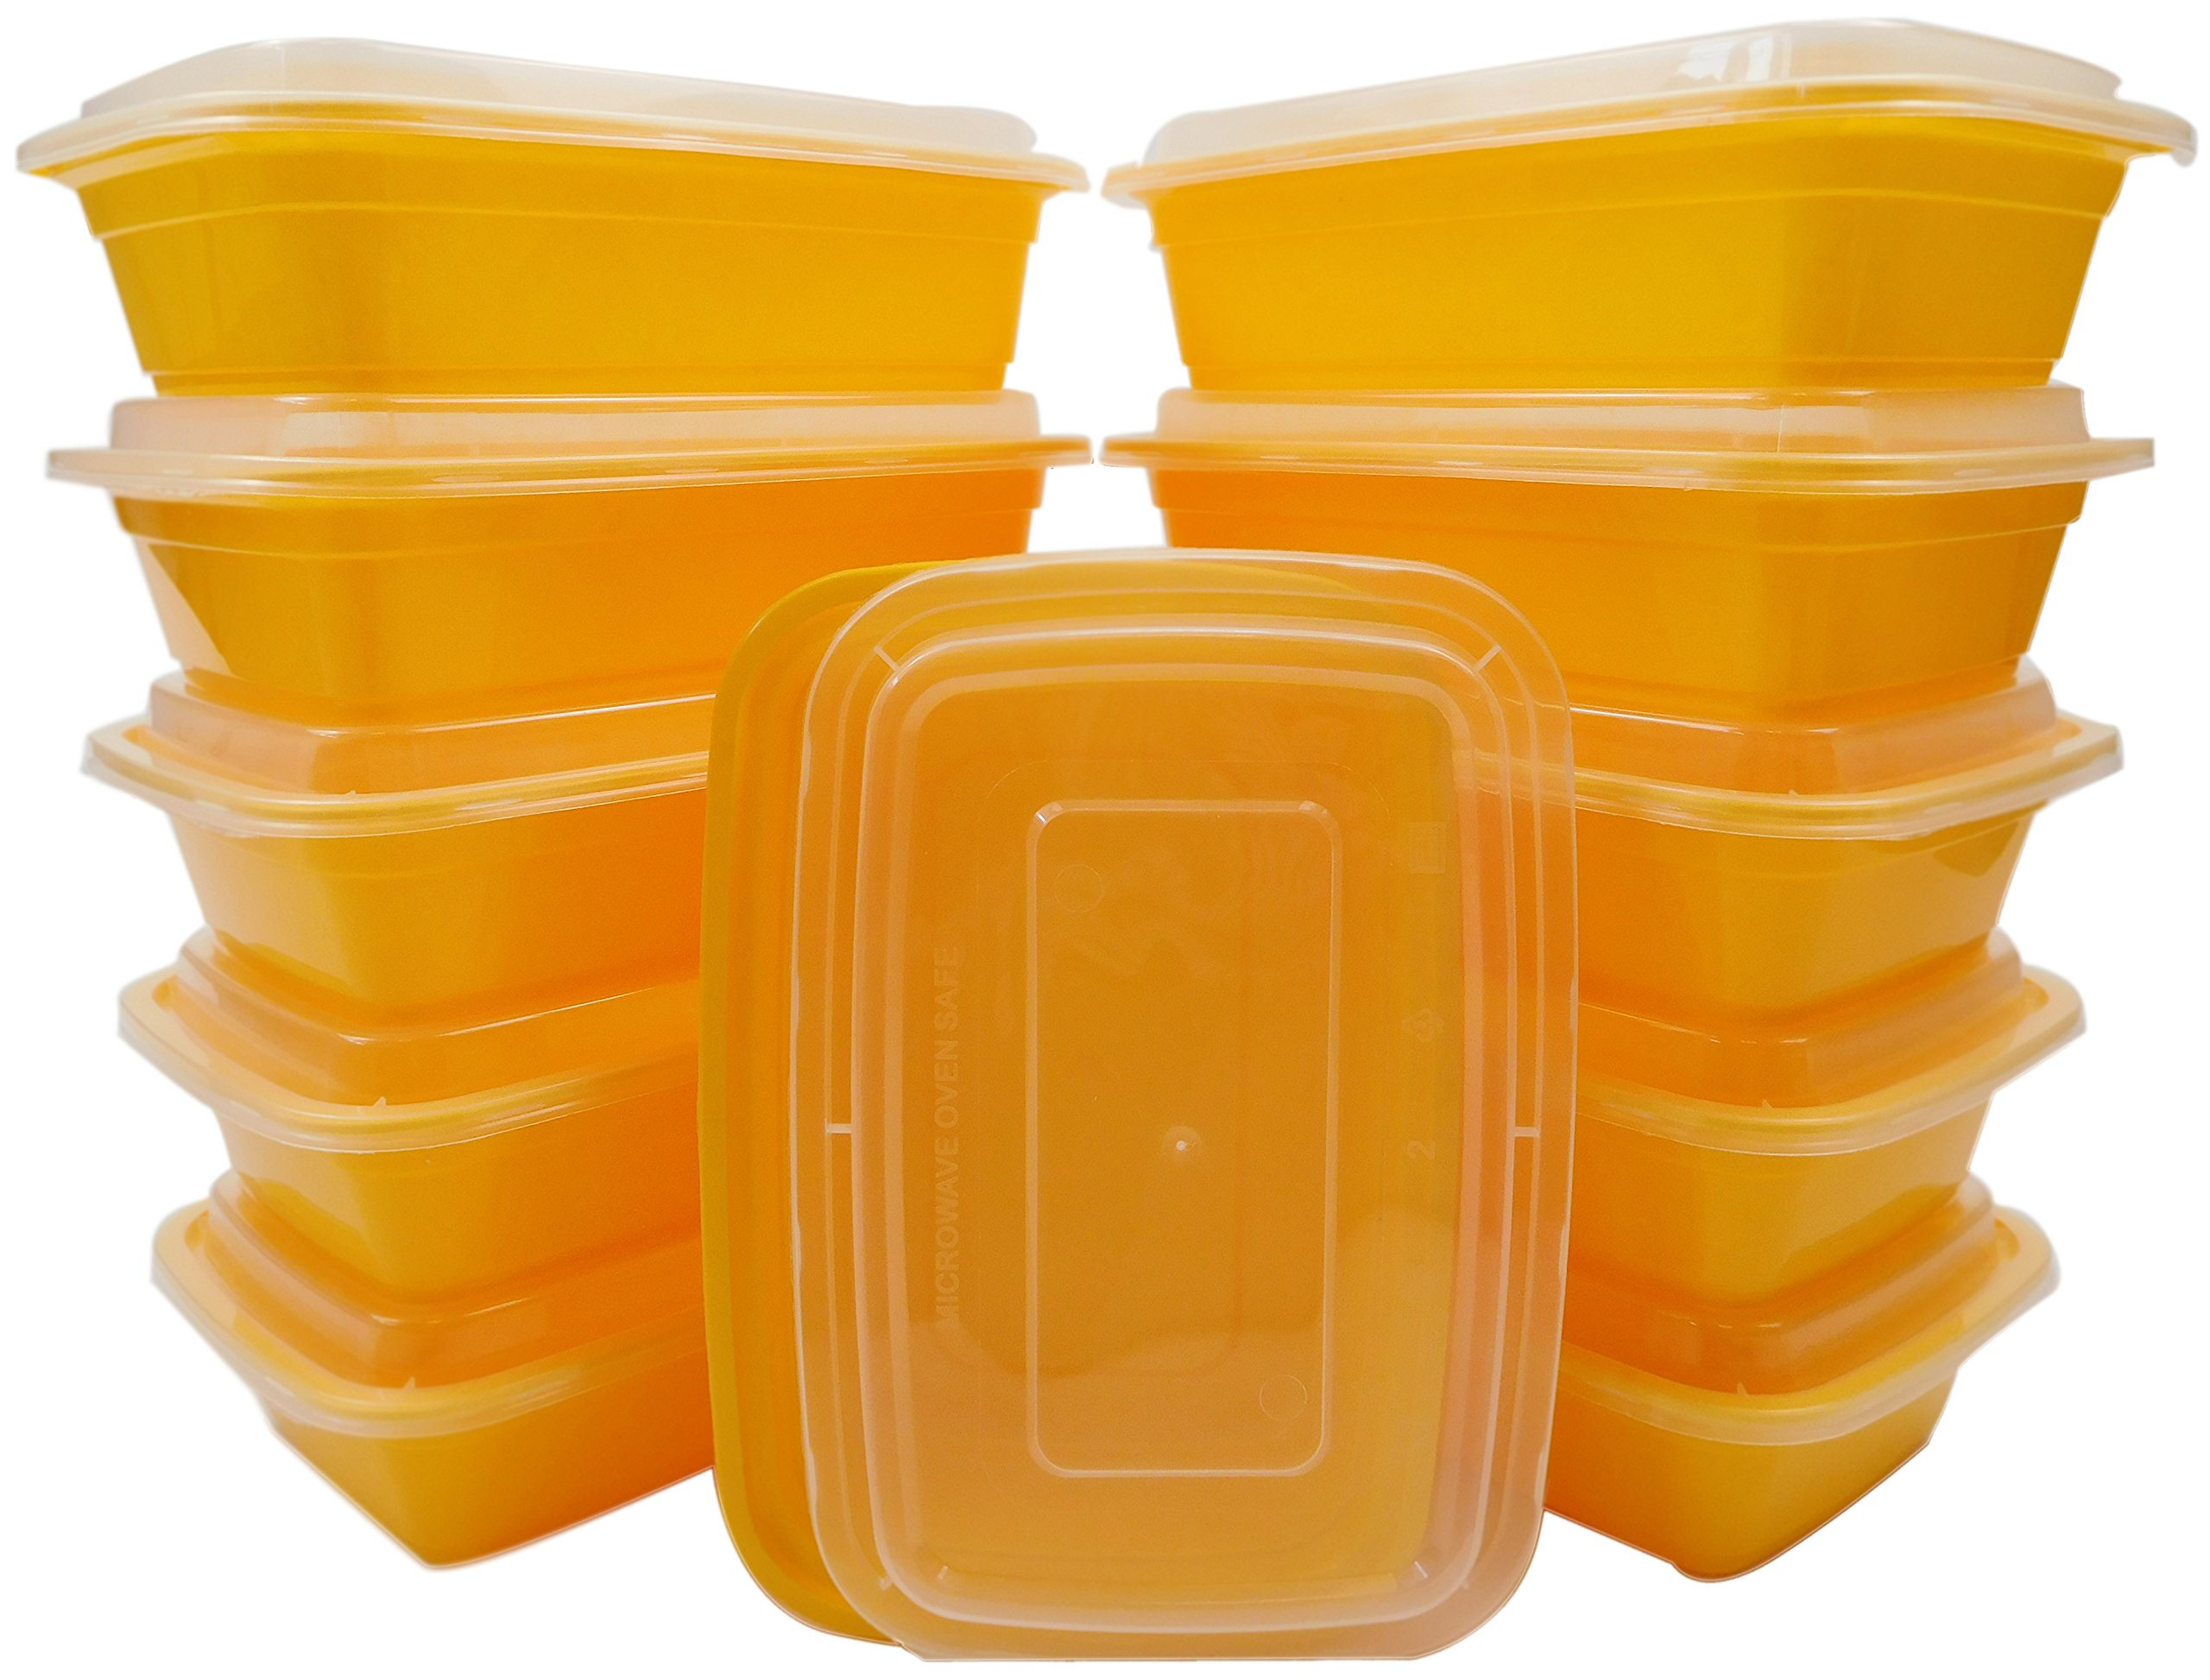 Table To Go 612409787491 300-Pack Bento Lunch Boxes with Lids (1 Compartment/ 34 oz.), Microwaveable, Dishwasher & Freezer Safe Meal Prep Containers, Yellow (Pack of 300)